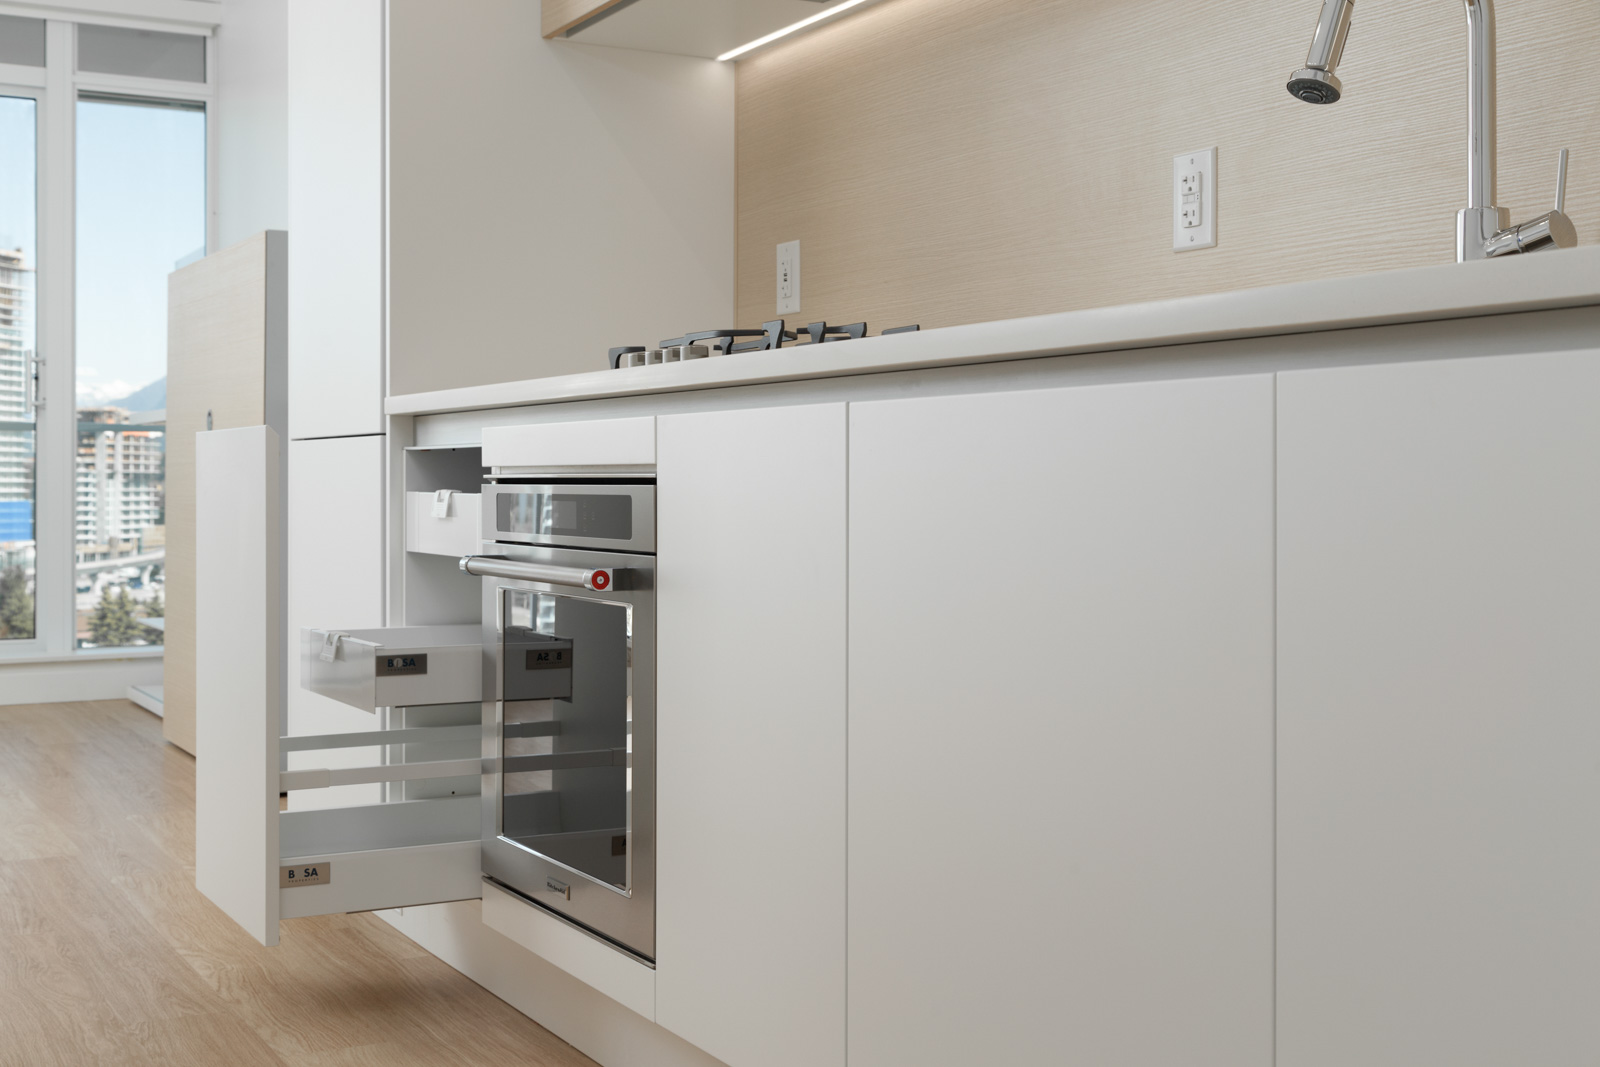 Bright spacious open kitchen with white quartz countertops and roll-out pantry storage and stainless steel oven and stove with storage cabinets brightly lit in a new condo in Coquitlam managed by Birds Nest Properties in Vancouver